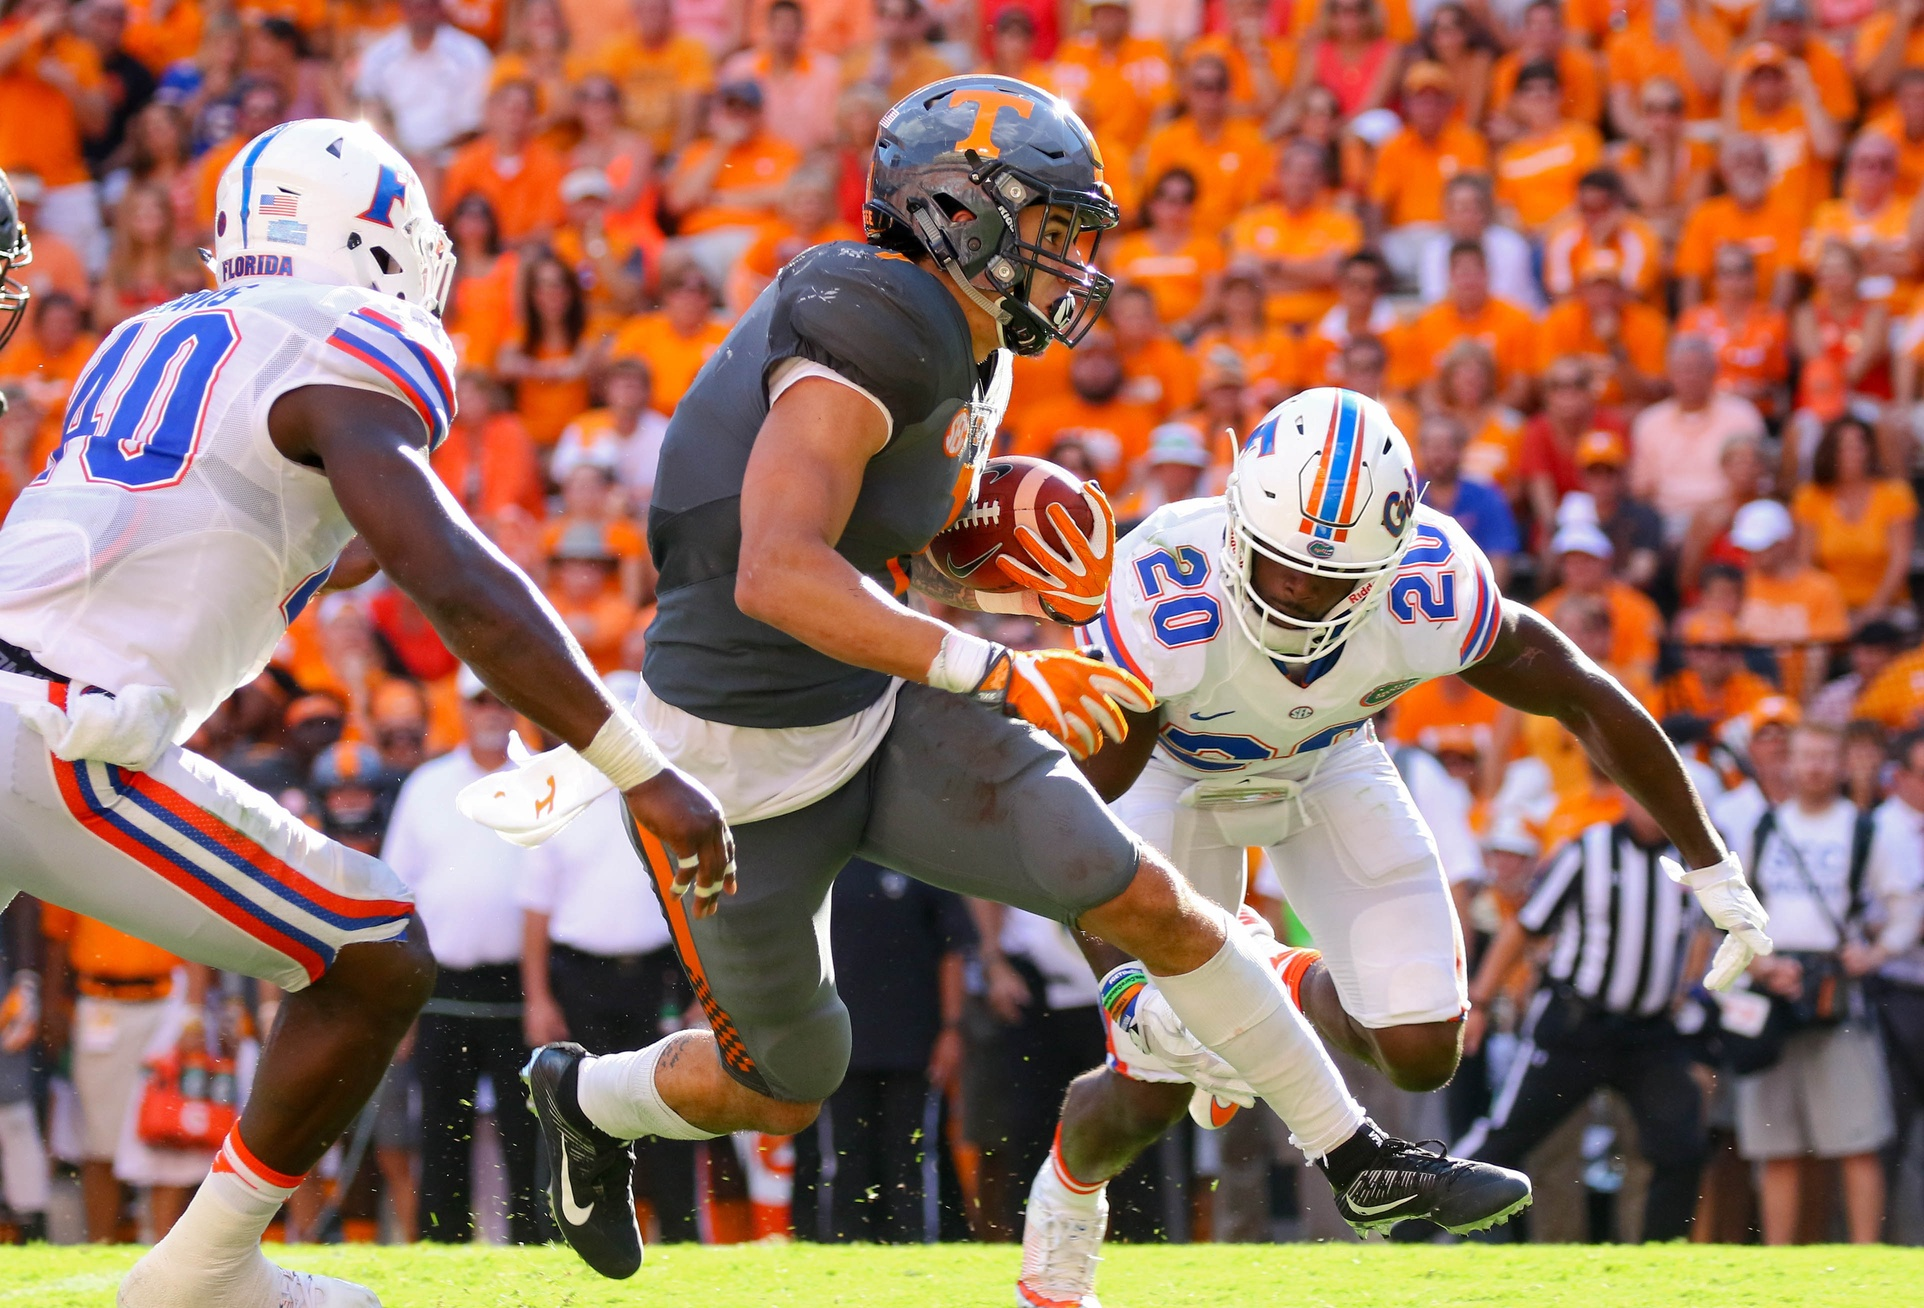 Sep 24, 2016; Knoxville, TN, USA; Tennessee Volunteers running back Jalen Hurd (1) runs the ball against Florida Gators defensive back Marcus Maye (20) during the second quarter at Neyland Stadium. Mandatory Credit: Randy Sartin-USA TODAY Sports